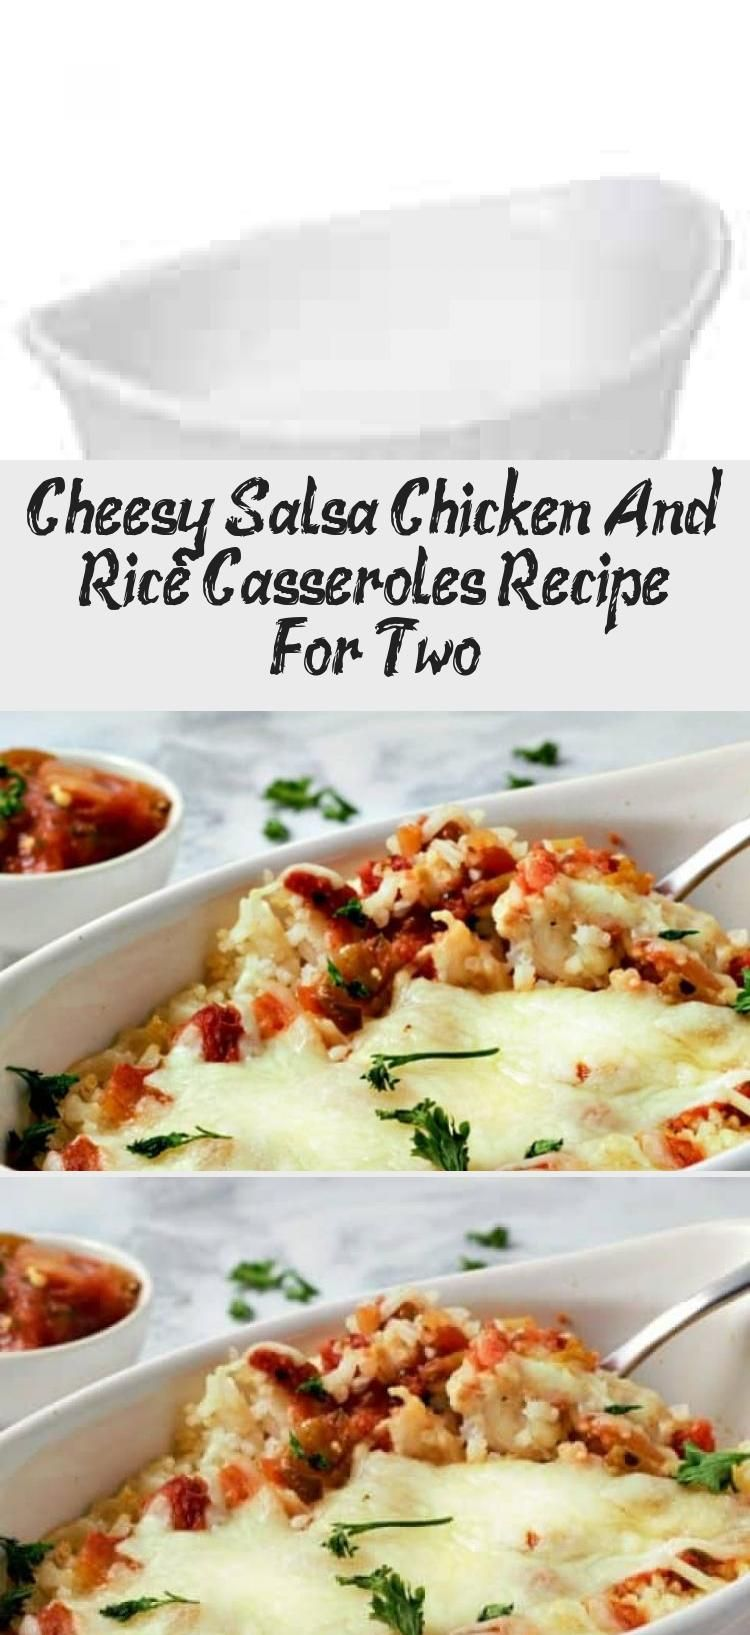 These Cheesy Salsa Chicken and Rice casseroles have layers of fluffy rice topped with Mexican seasoned diced chicken, chunky salsa and melted Monterey Jack cheese. This recipe is made, baked, and served in individual dishes that go right from the oven to the table for easy clean up. This dish makes a great lunch, dinner, or romantic date night meal for two. #chicken #salsa #cheese #Mexican #casserole #rice #RecipesForTwo #winterdinnerrecipesVegetarian #winterdinnerrecipesKeto #winterdinnerrecipe